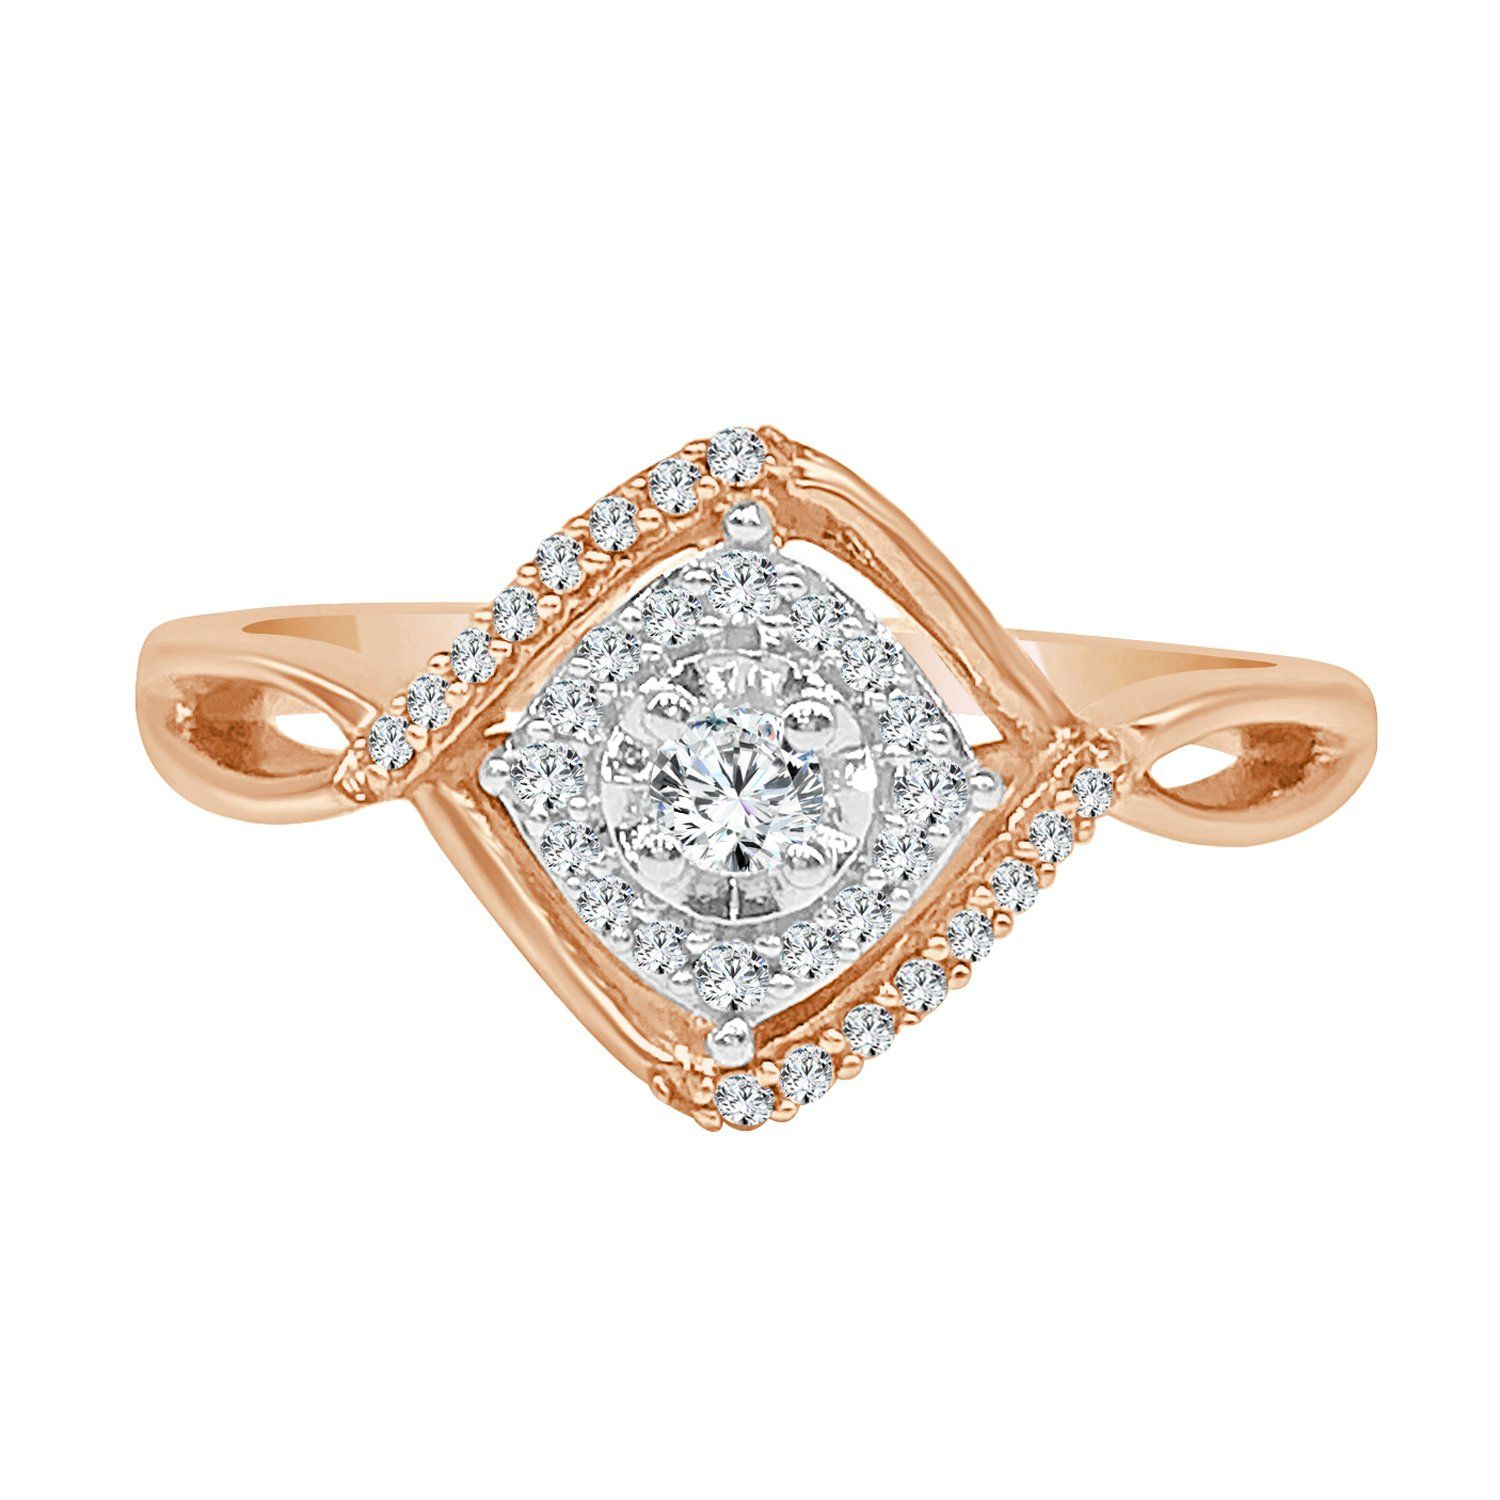 10 Karat Two Tone 0 2 Diamond Engagement Ring Unique Engagement Rings Rose Gold Engagement Ring Diamond Engagement Rings